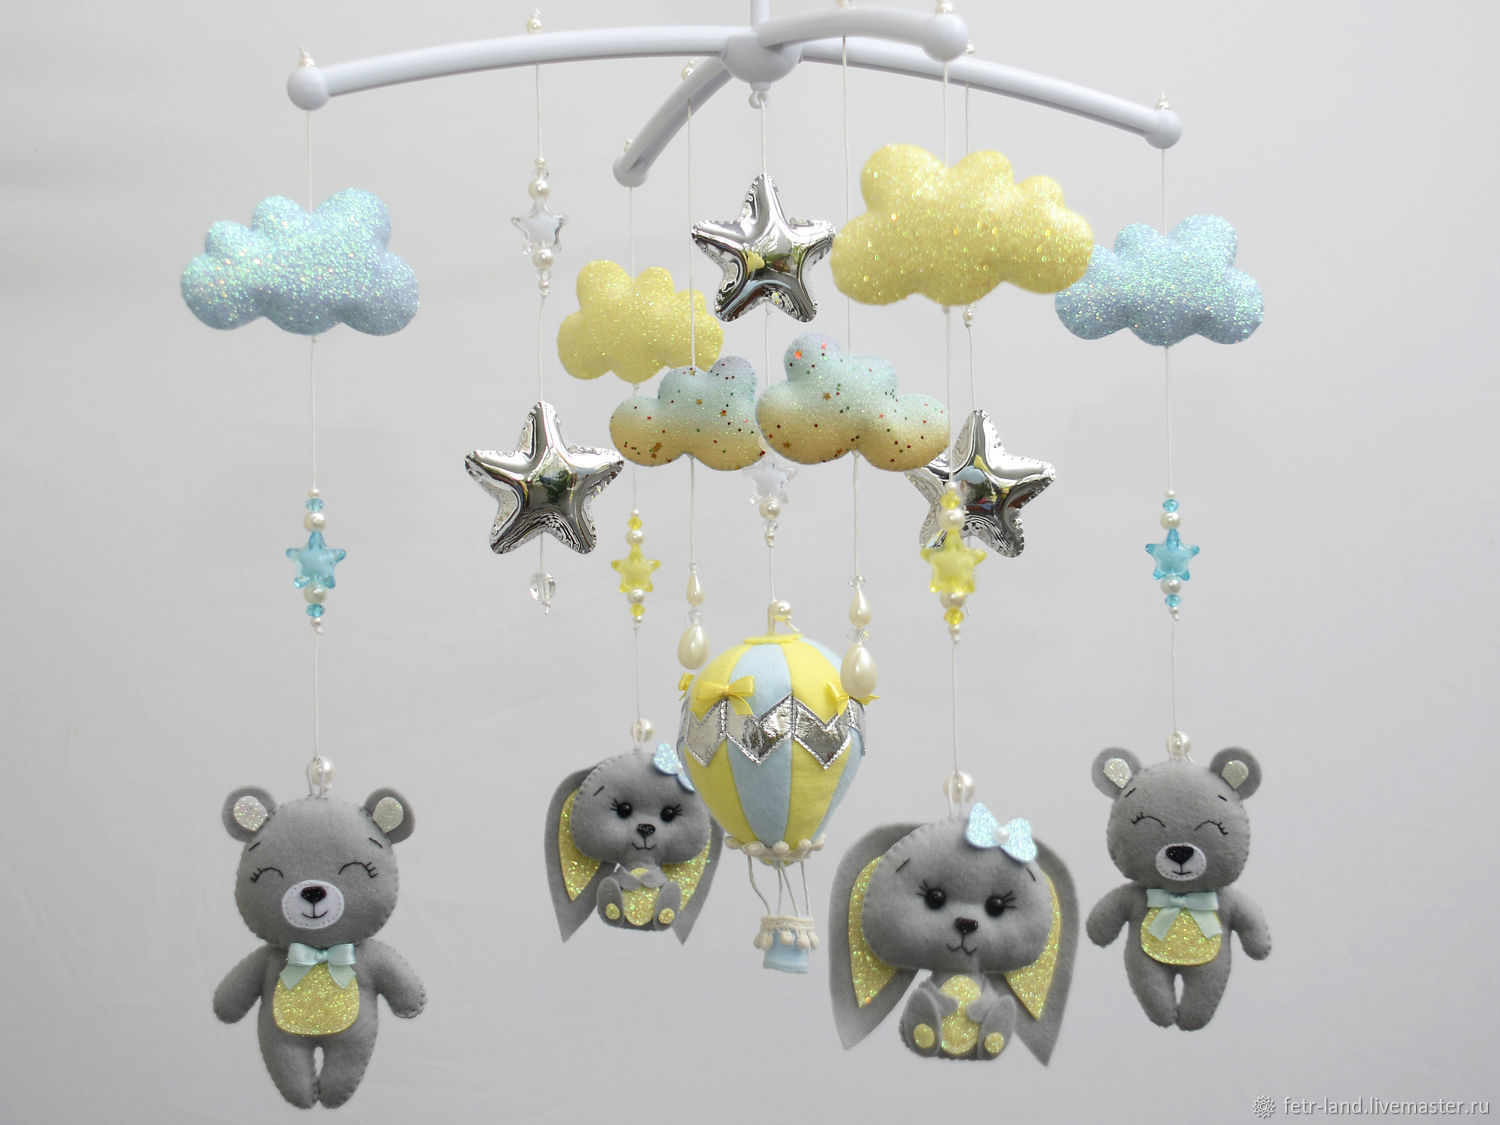 Mobiles on the crib: Grey-yellow ' Bears and bunnies', Toys for cribs, Belgorod,  Фото №1